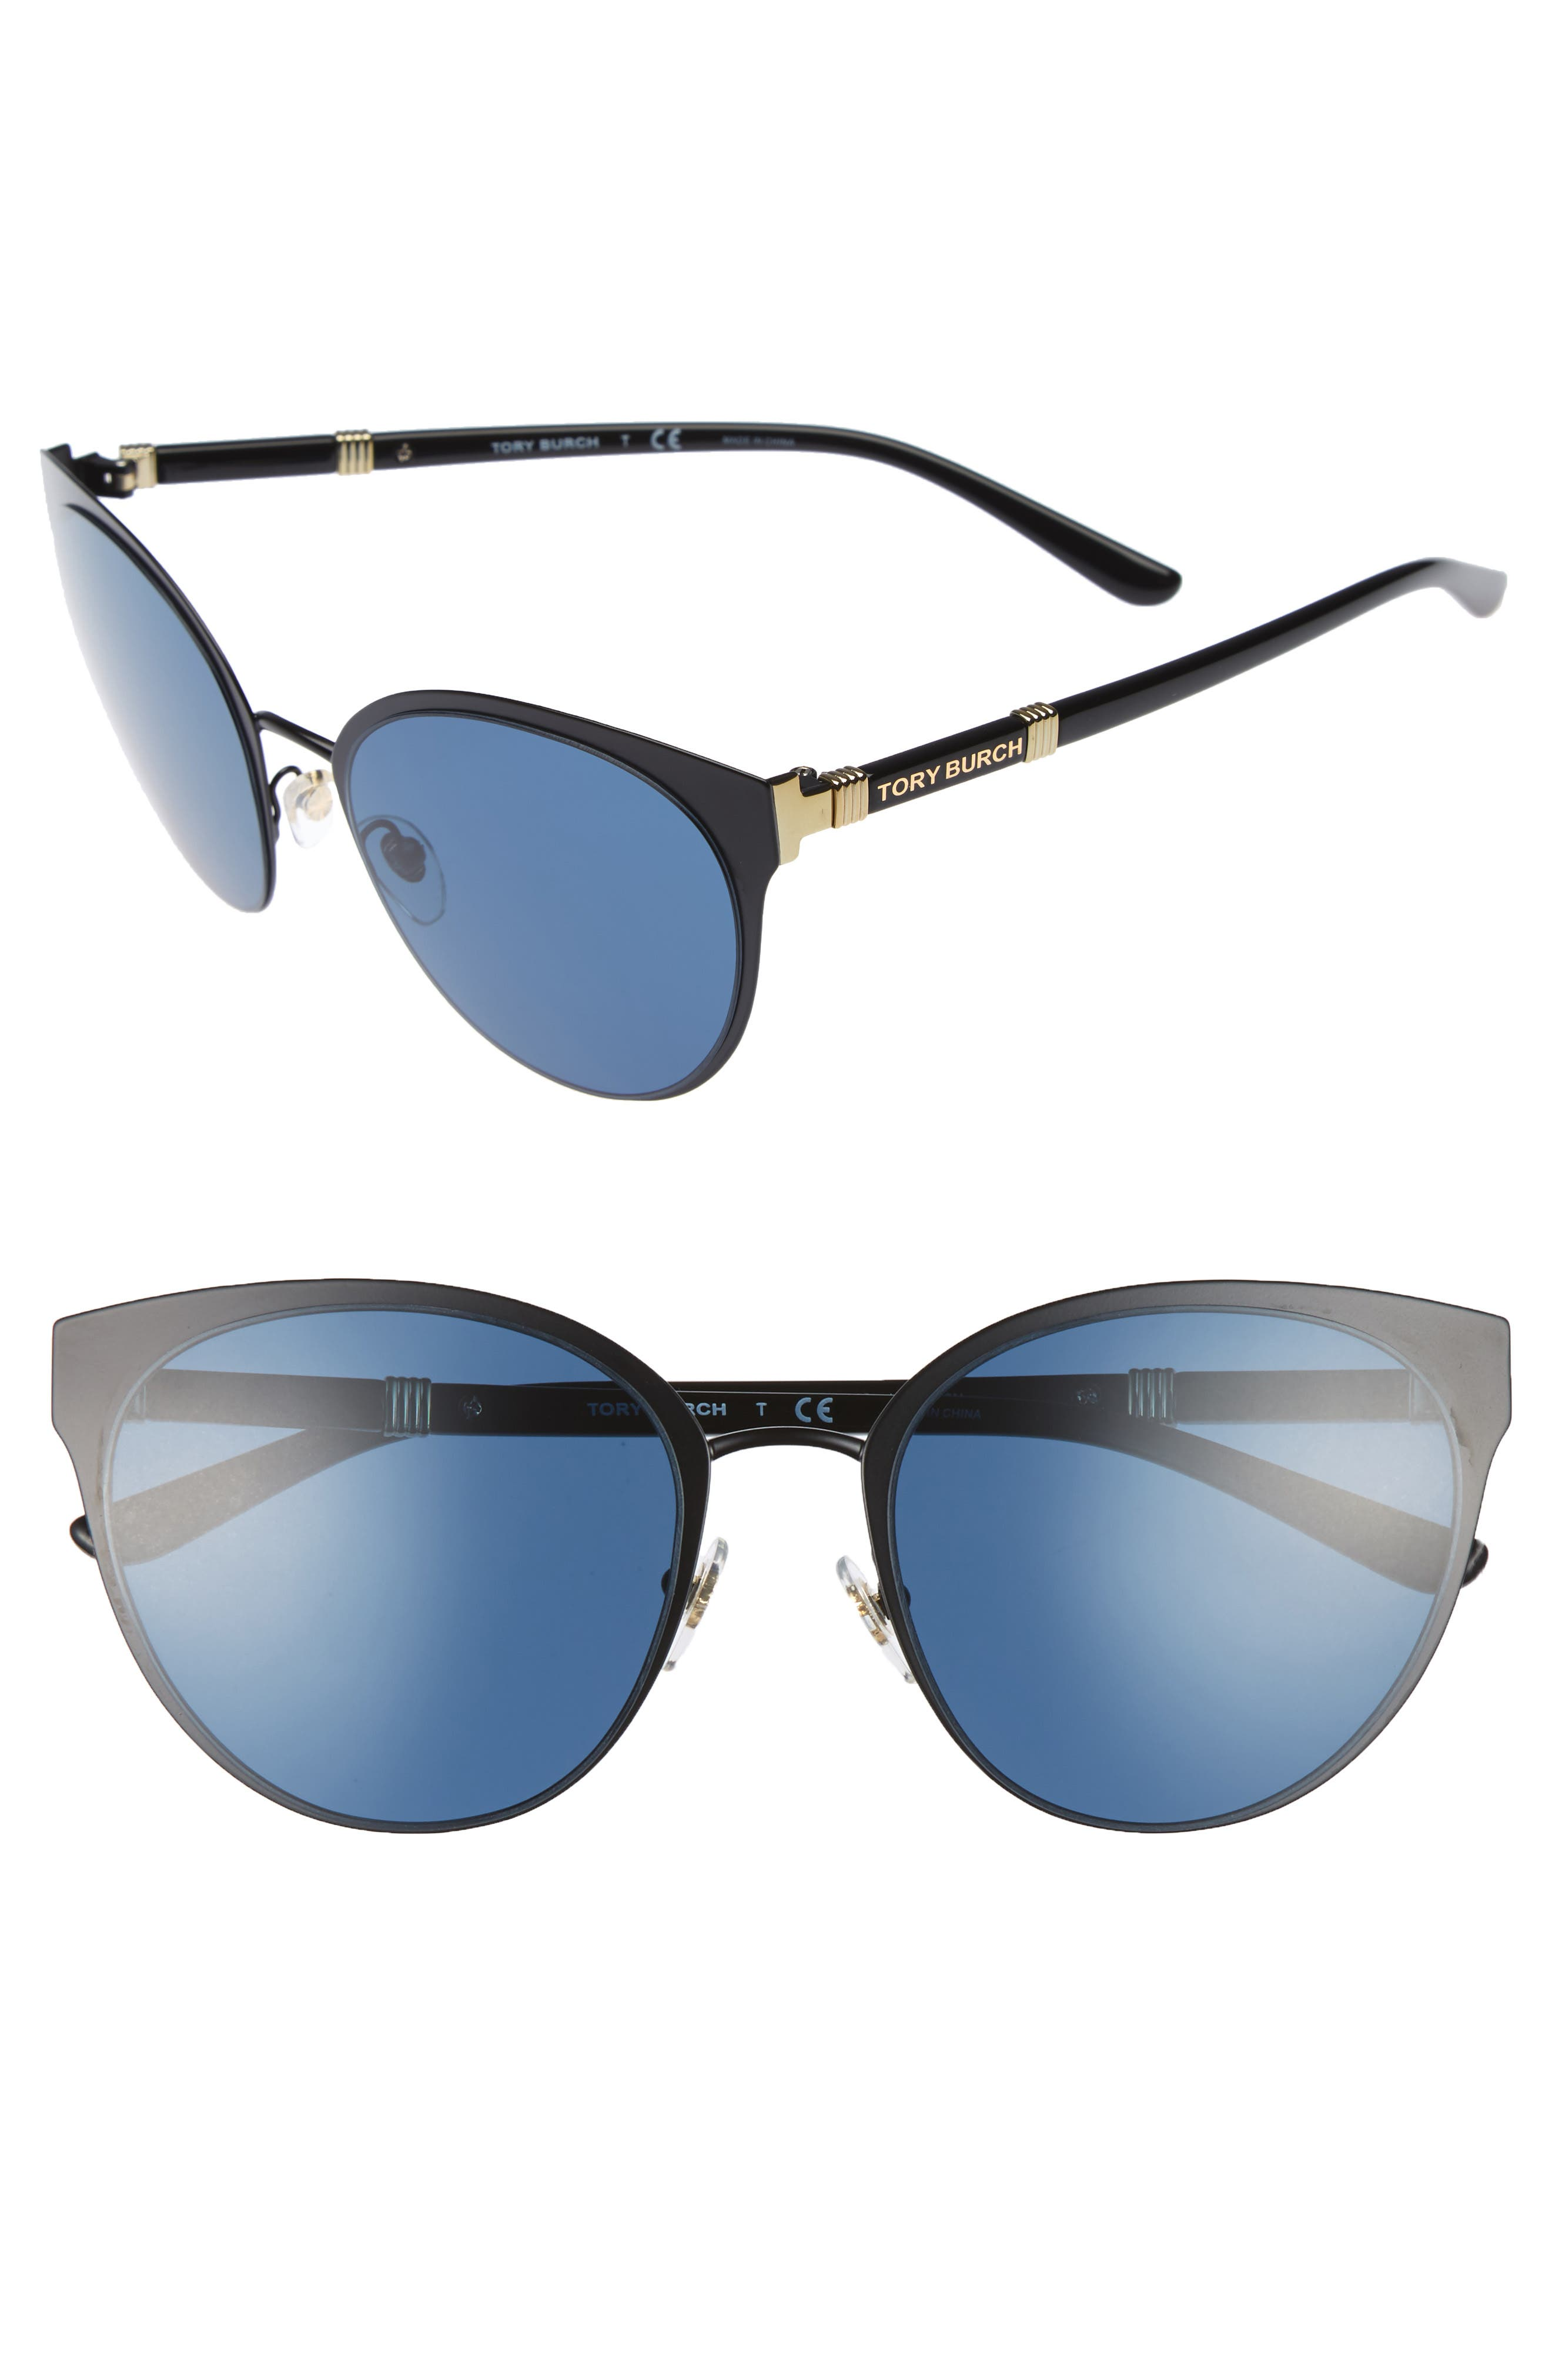 Main Image - Tory Burch 55mm Cat Eye Sunglasses